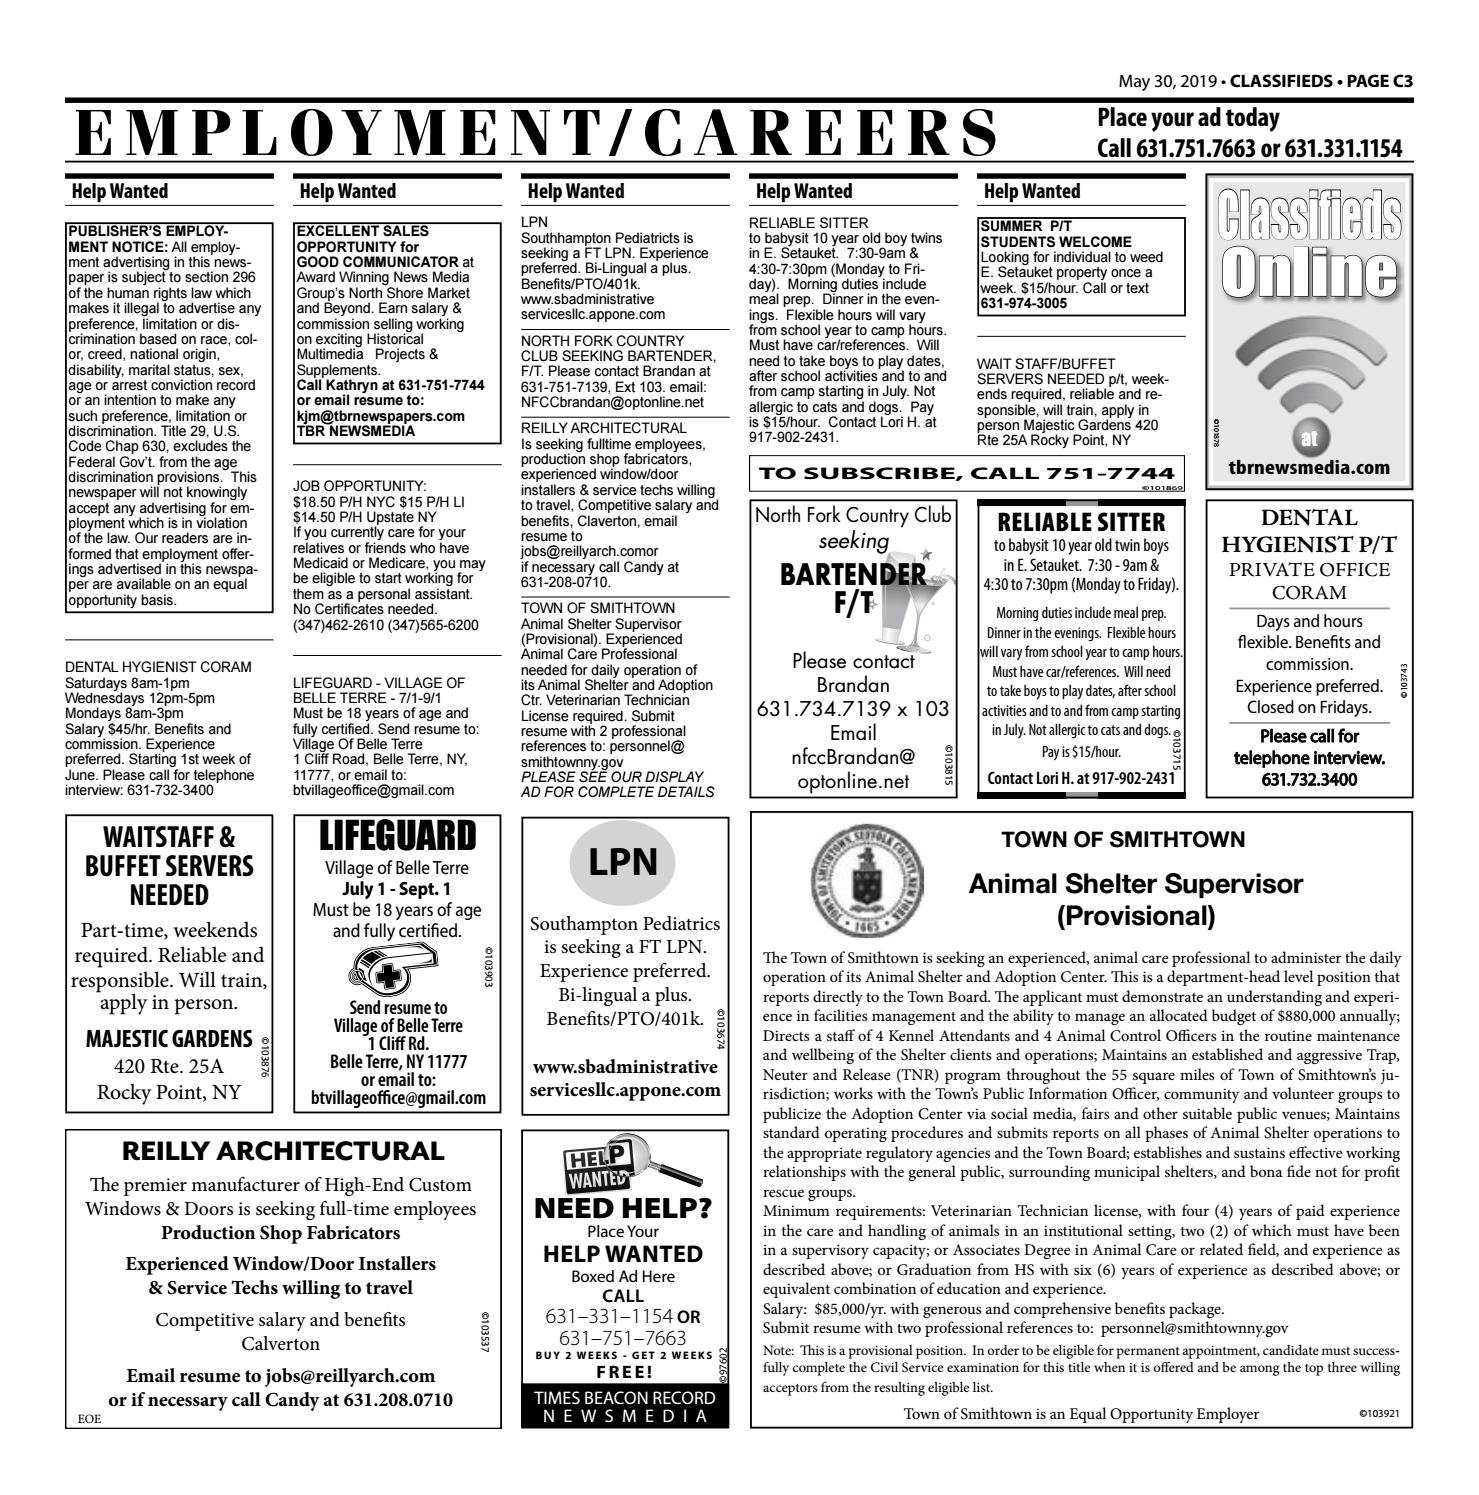 Employment/Careers - May 30, 2019 by TBR News Media - issuu